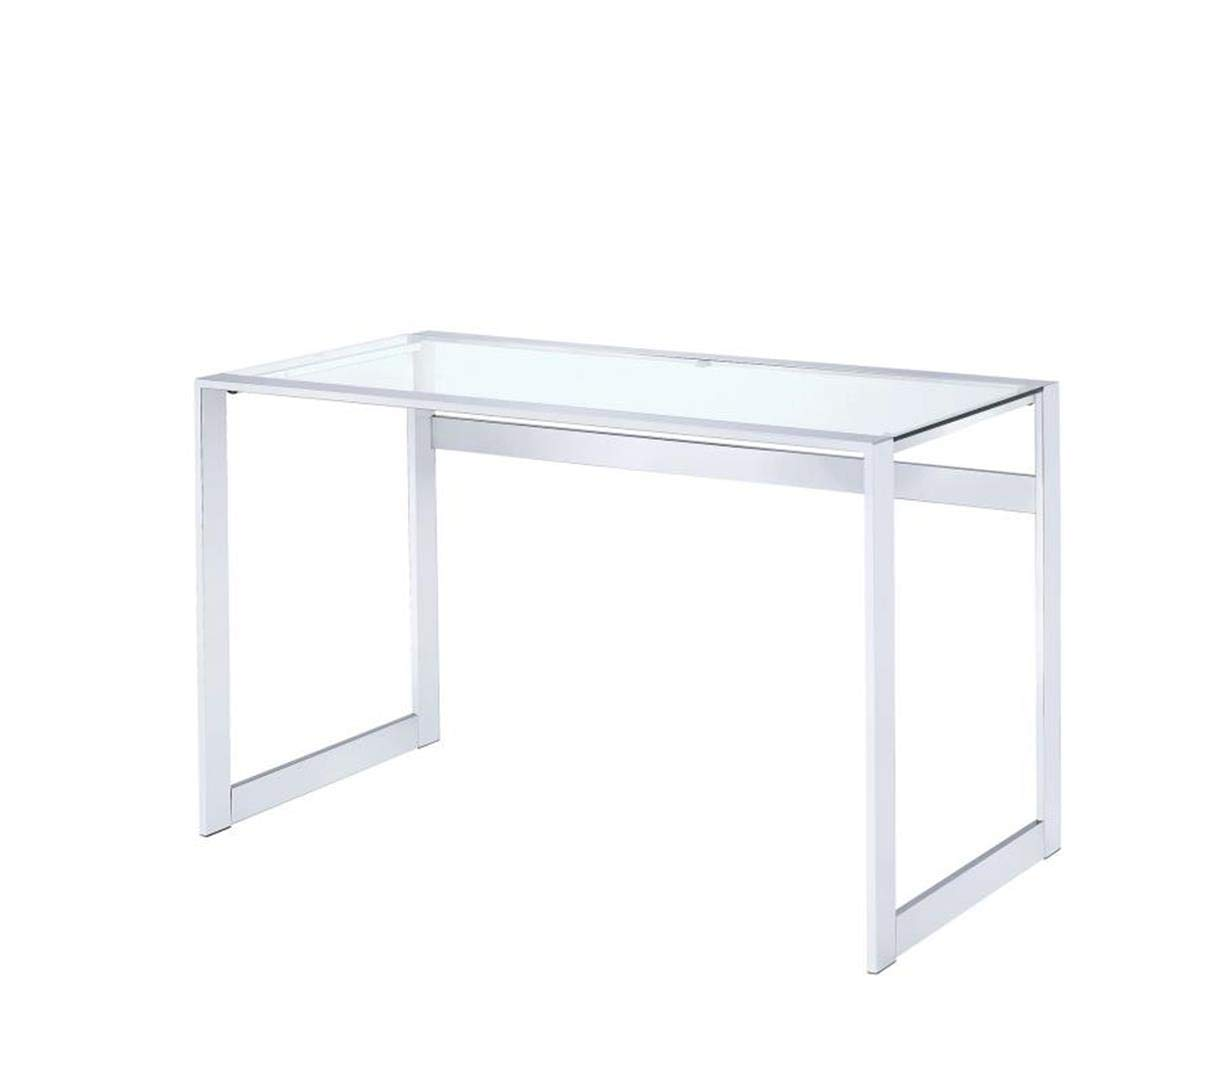 Coaster 800746 CO-800746 Writing Desk, Chrome by Coaster Home Furnishings